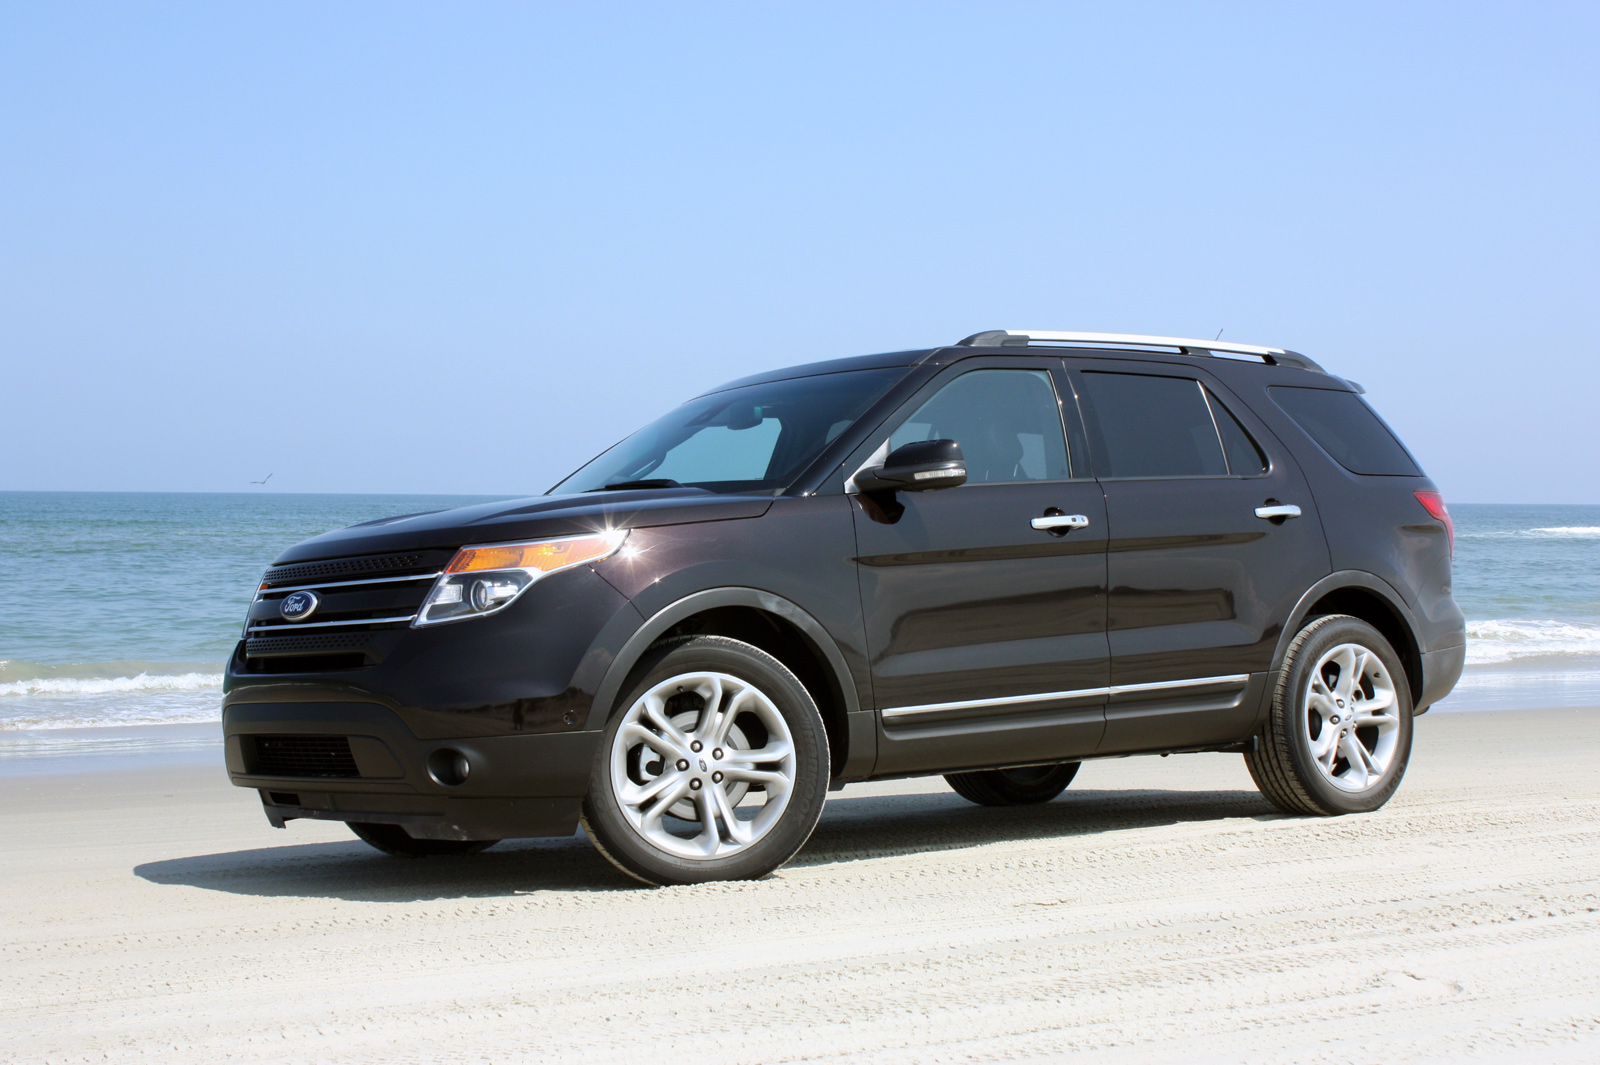 2011 Ford Explorer For Sale >> 2013 Ford Explorer Limited AWD - Autoblog